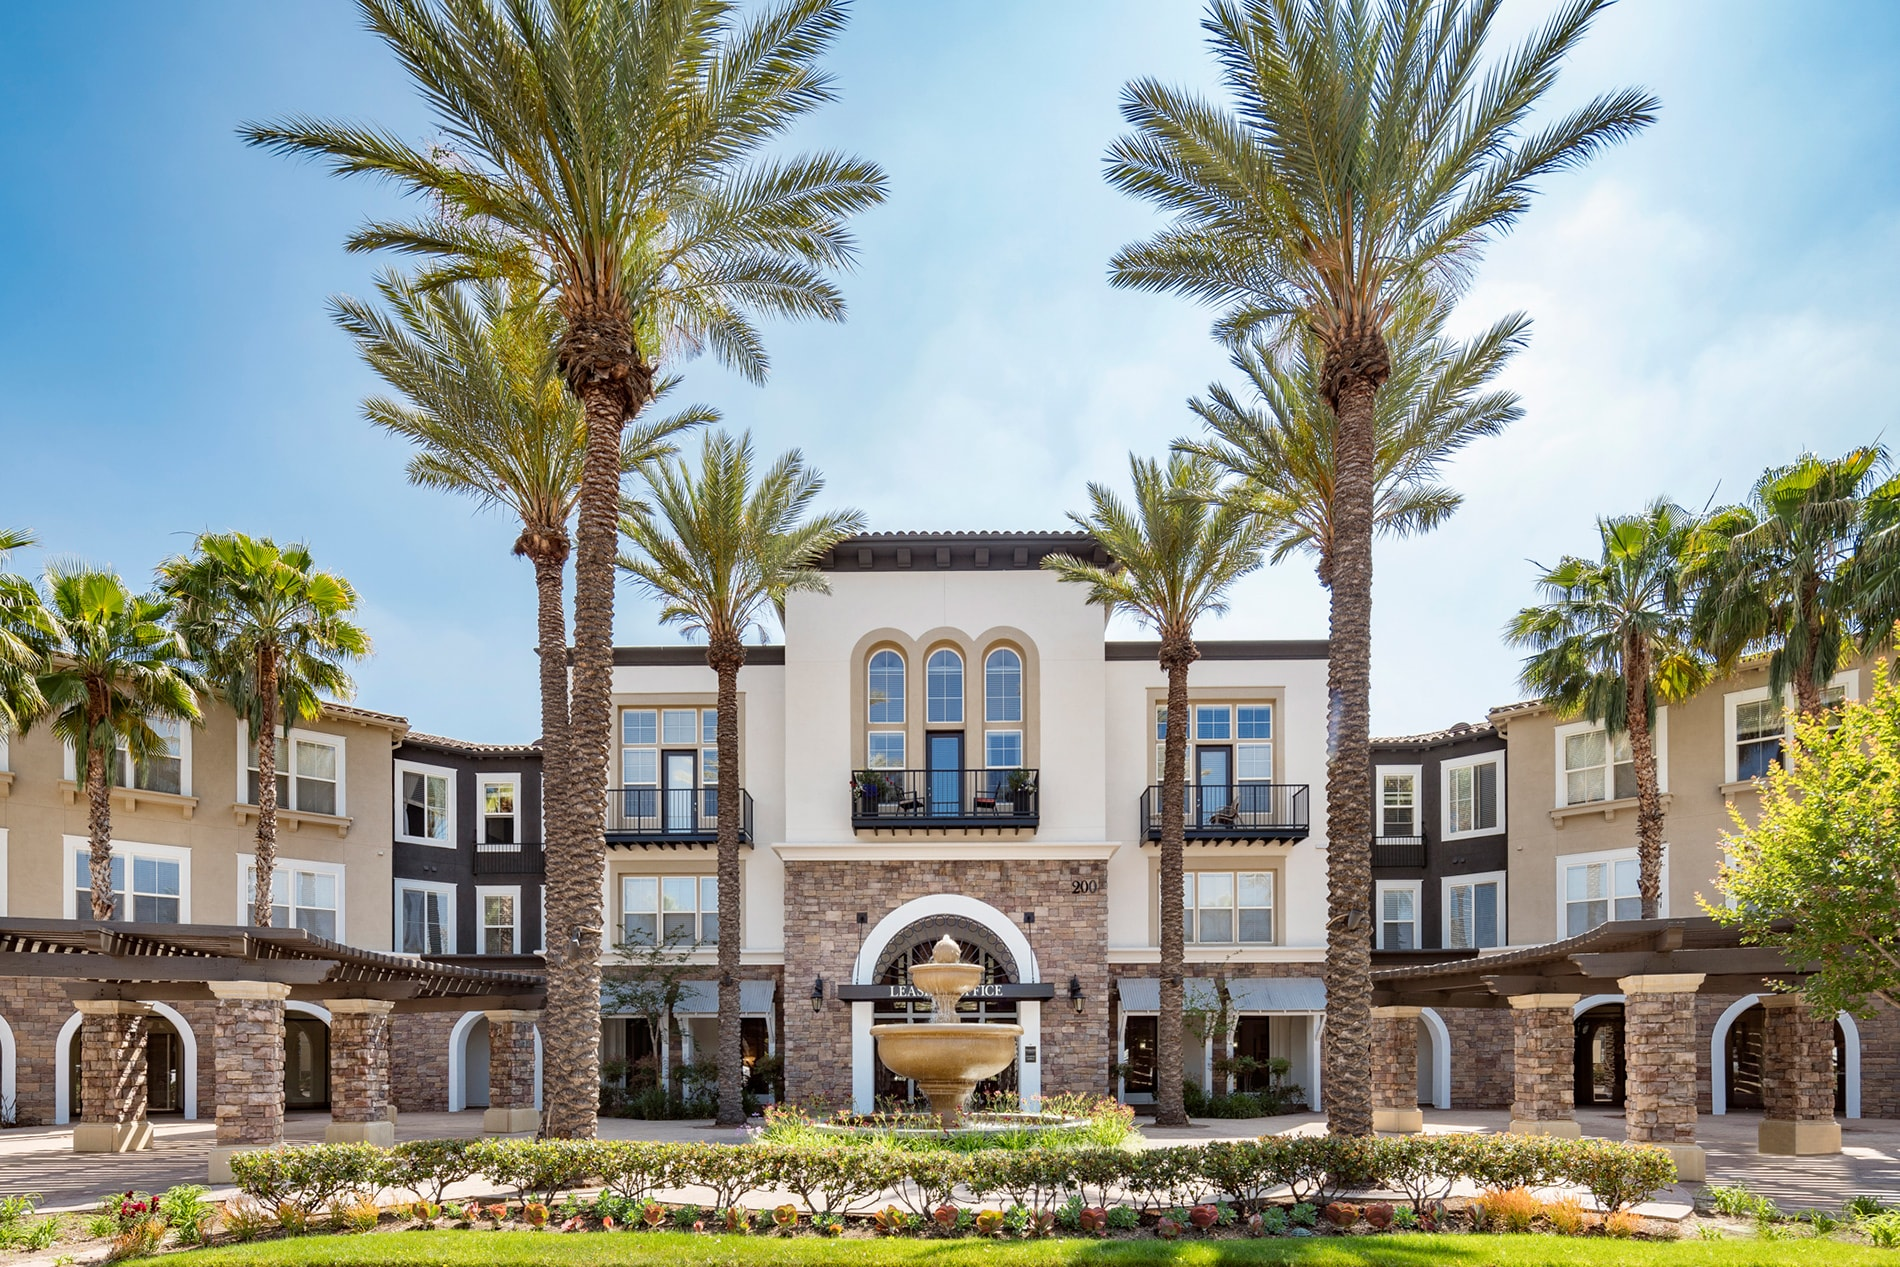 Verano At Rancho Cucamonga Town Square Apartments In The Inland Empire Area